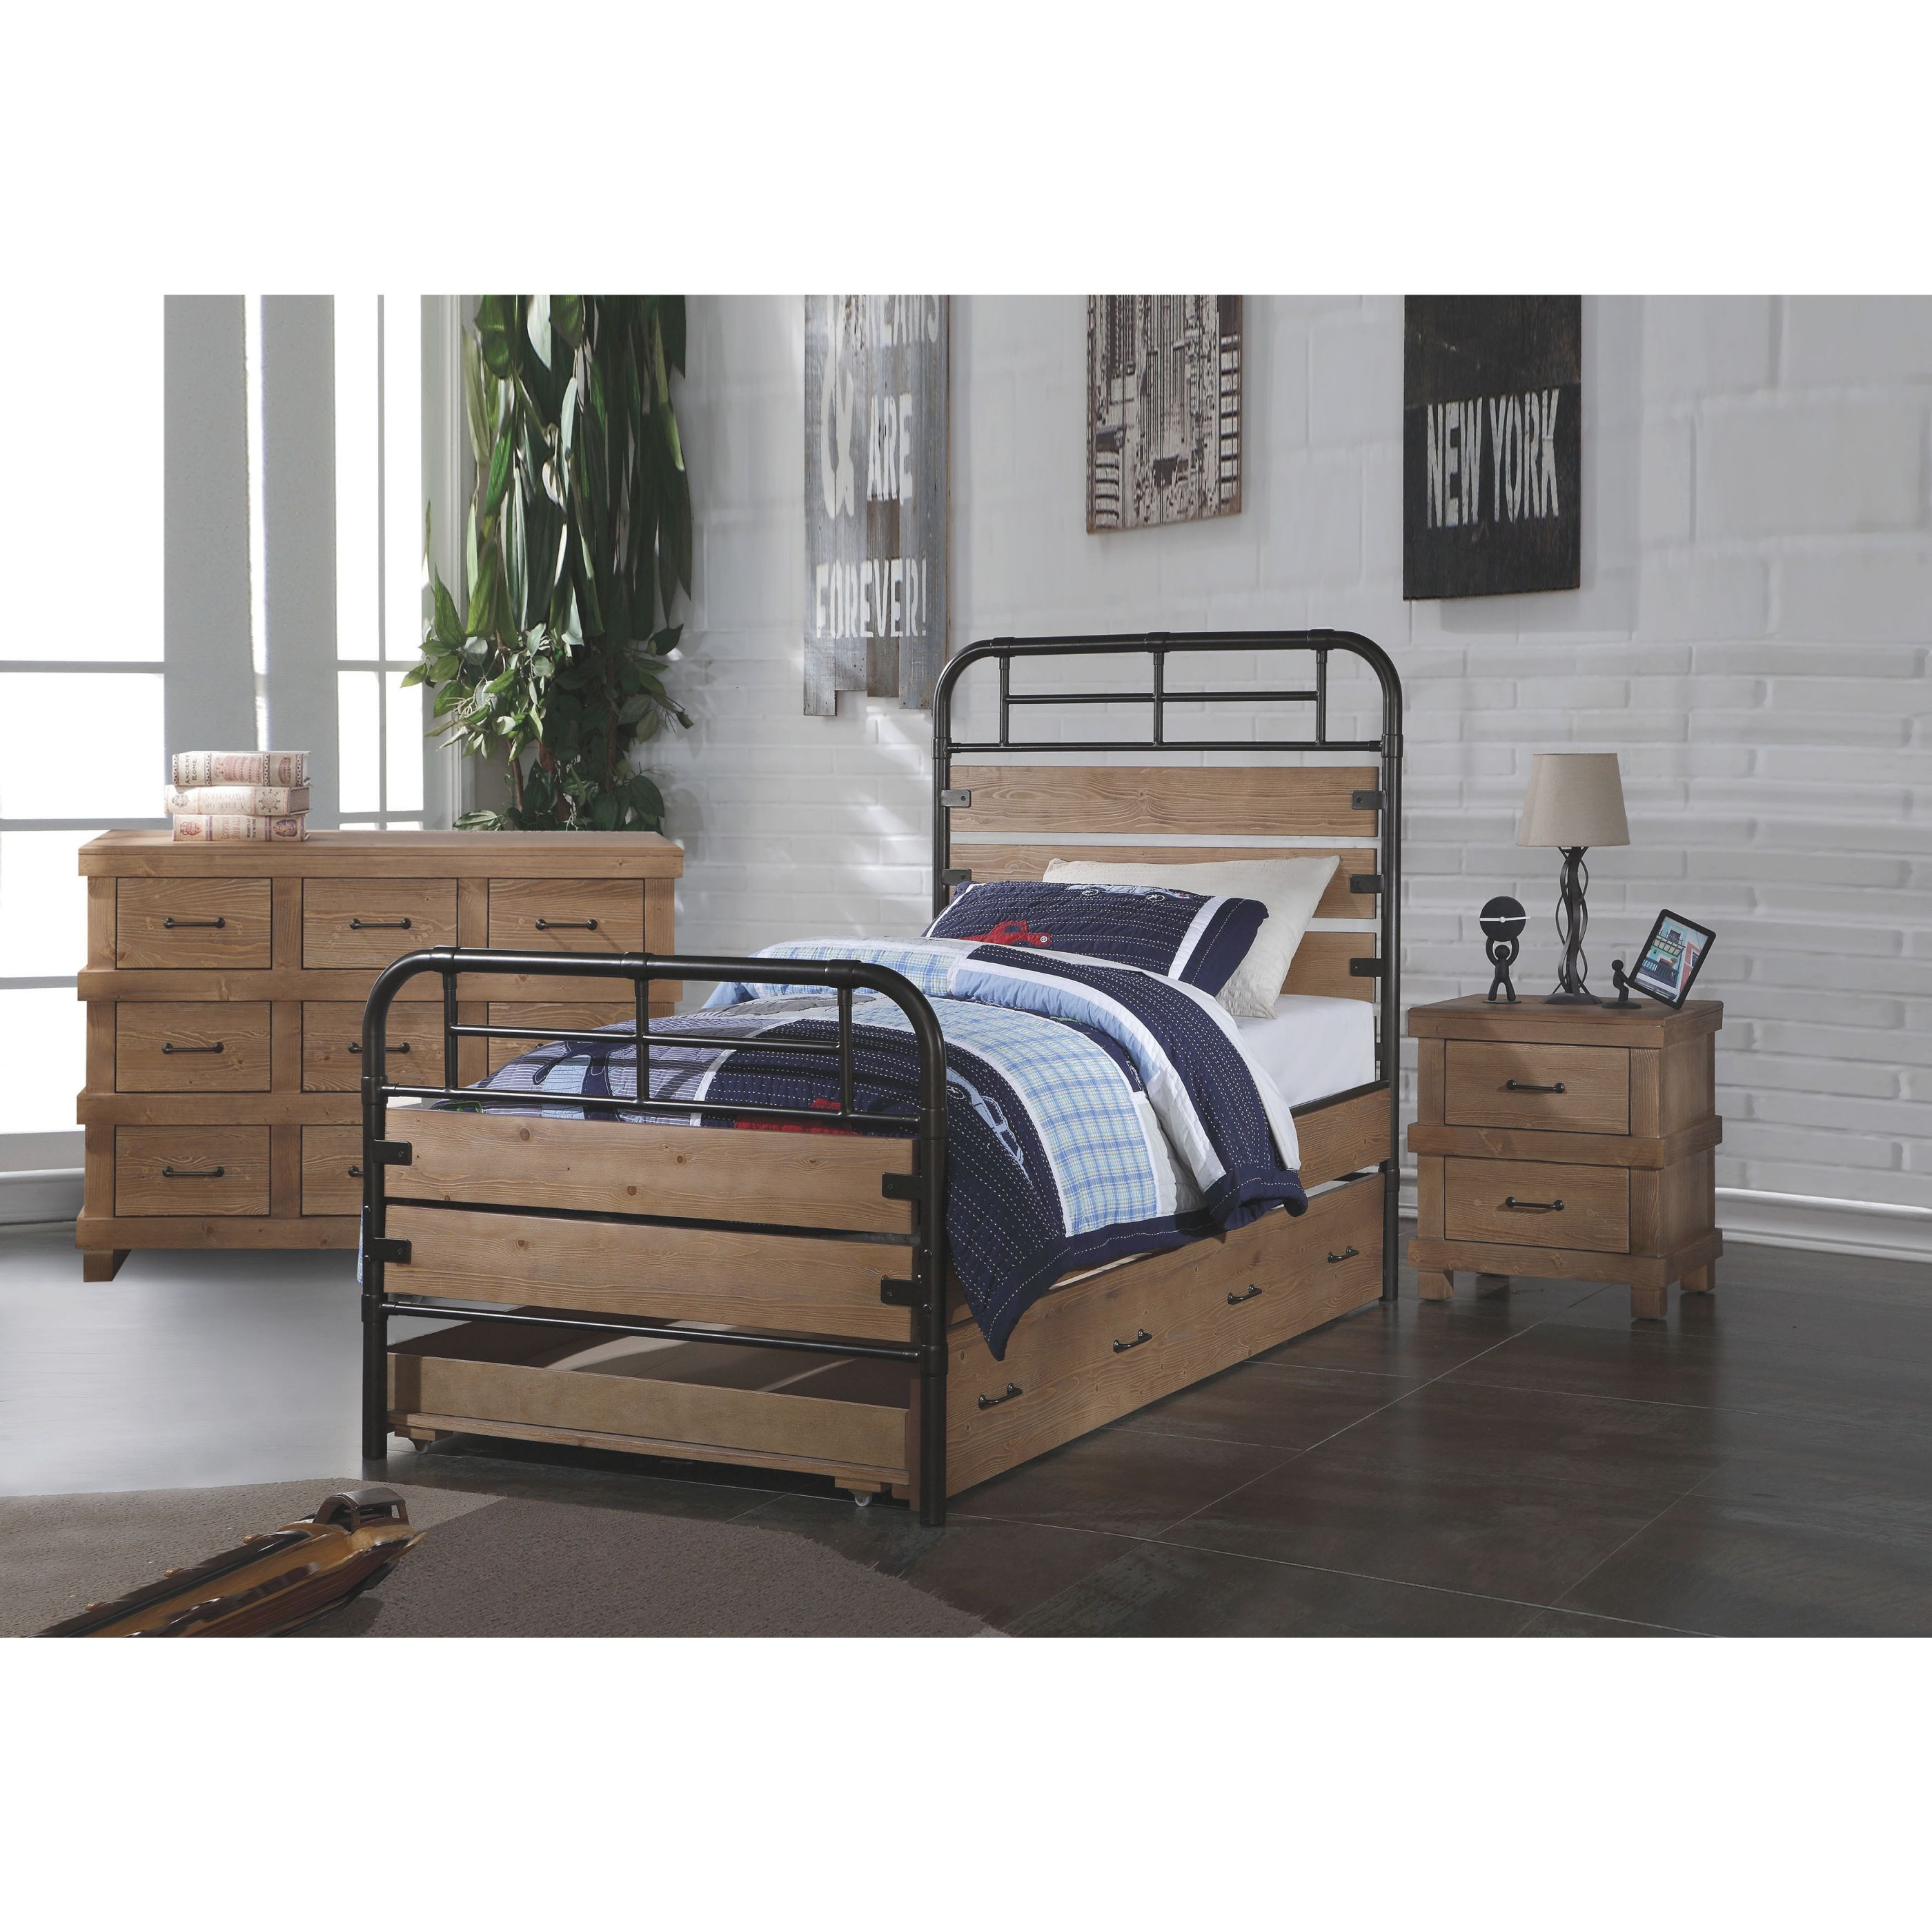 Bedroom Sets Walmart Inside Fresh Cheap Bedroom Furniture Sets